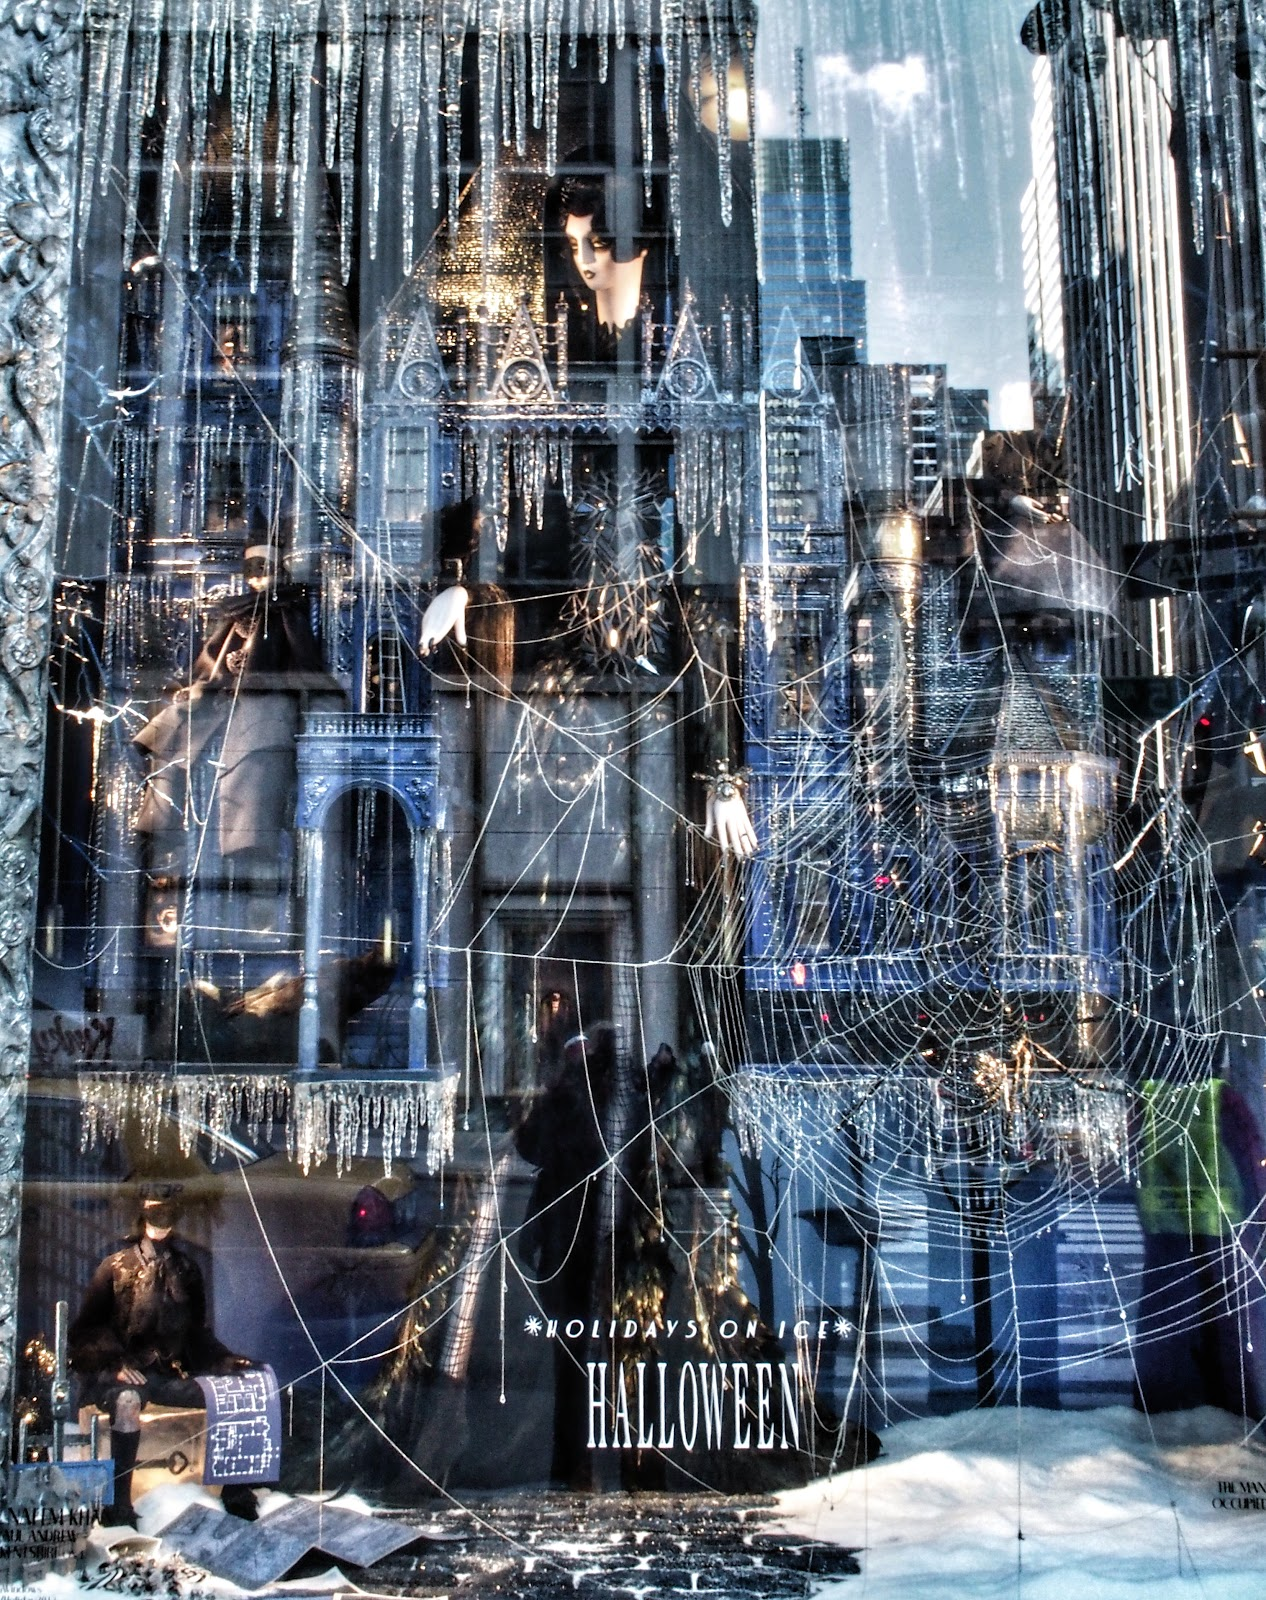 Halloween Window, #halloween #holidaysonice #bgwindows #nyc #bergdorf #nyc 2014